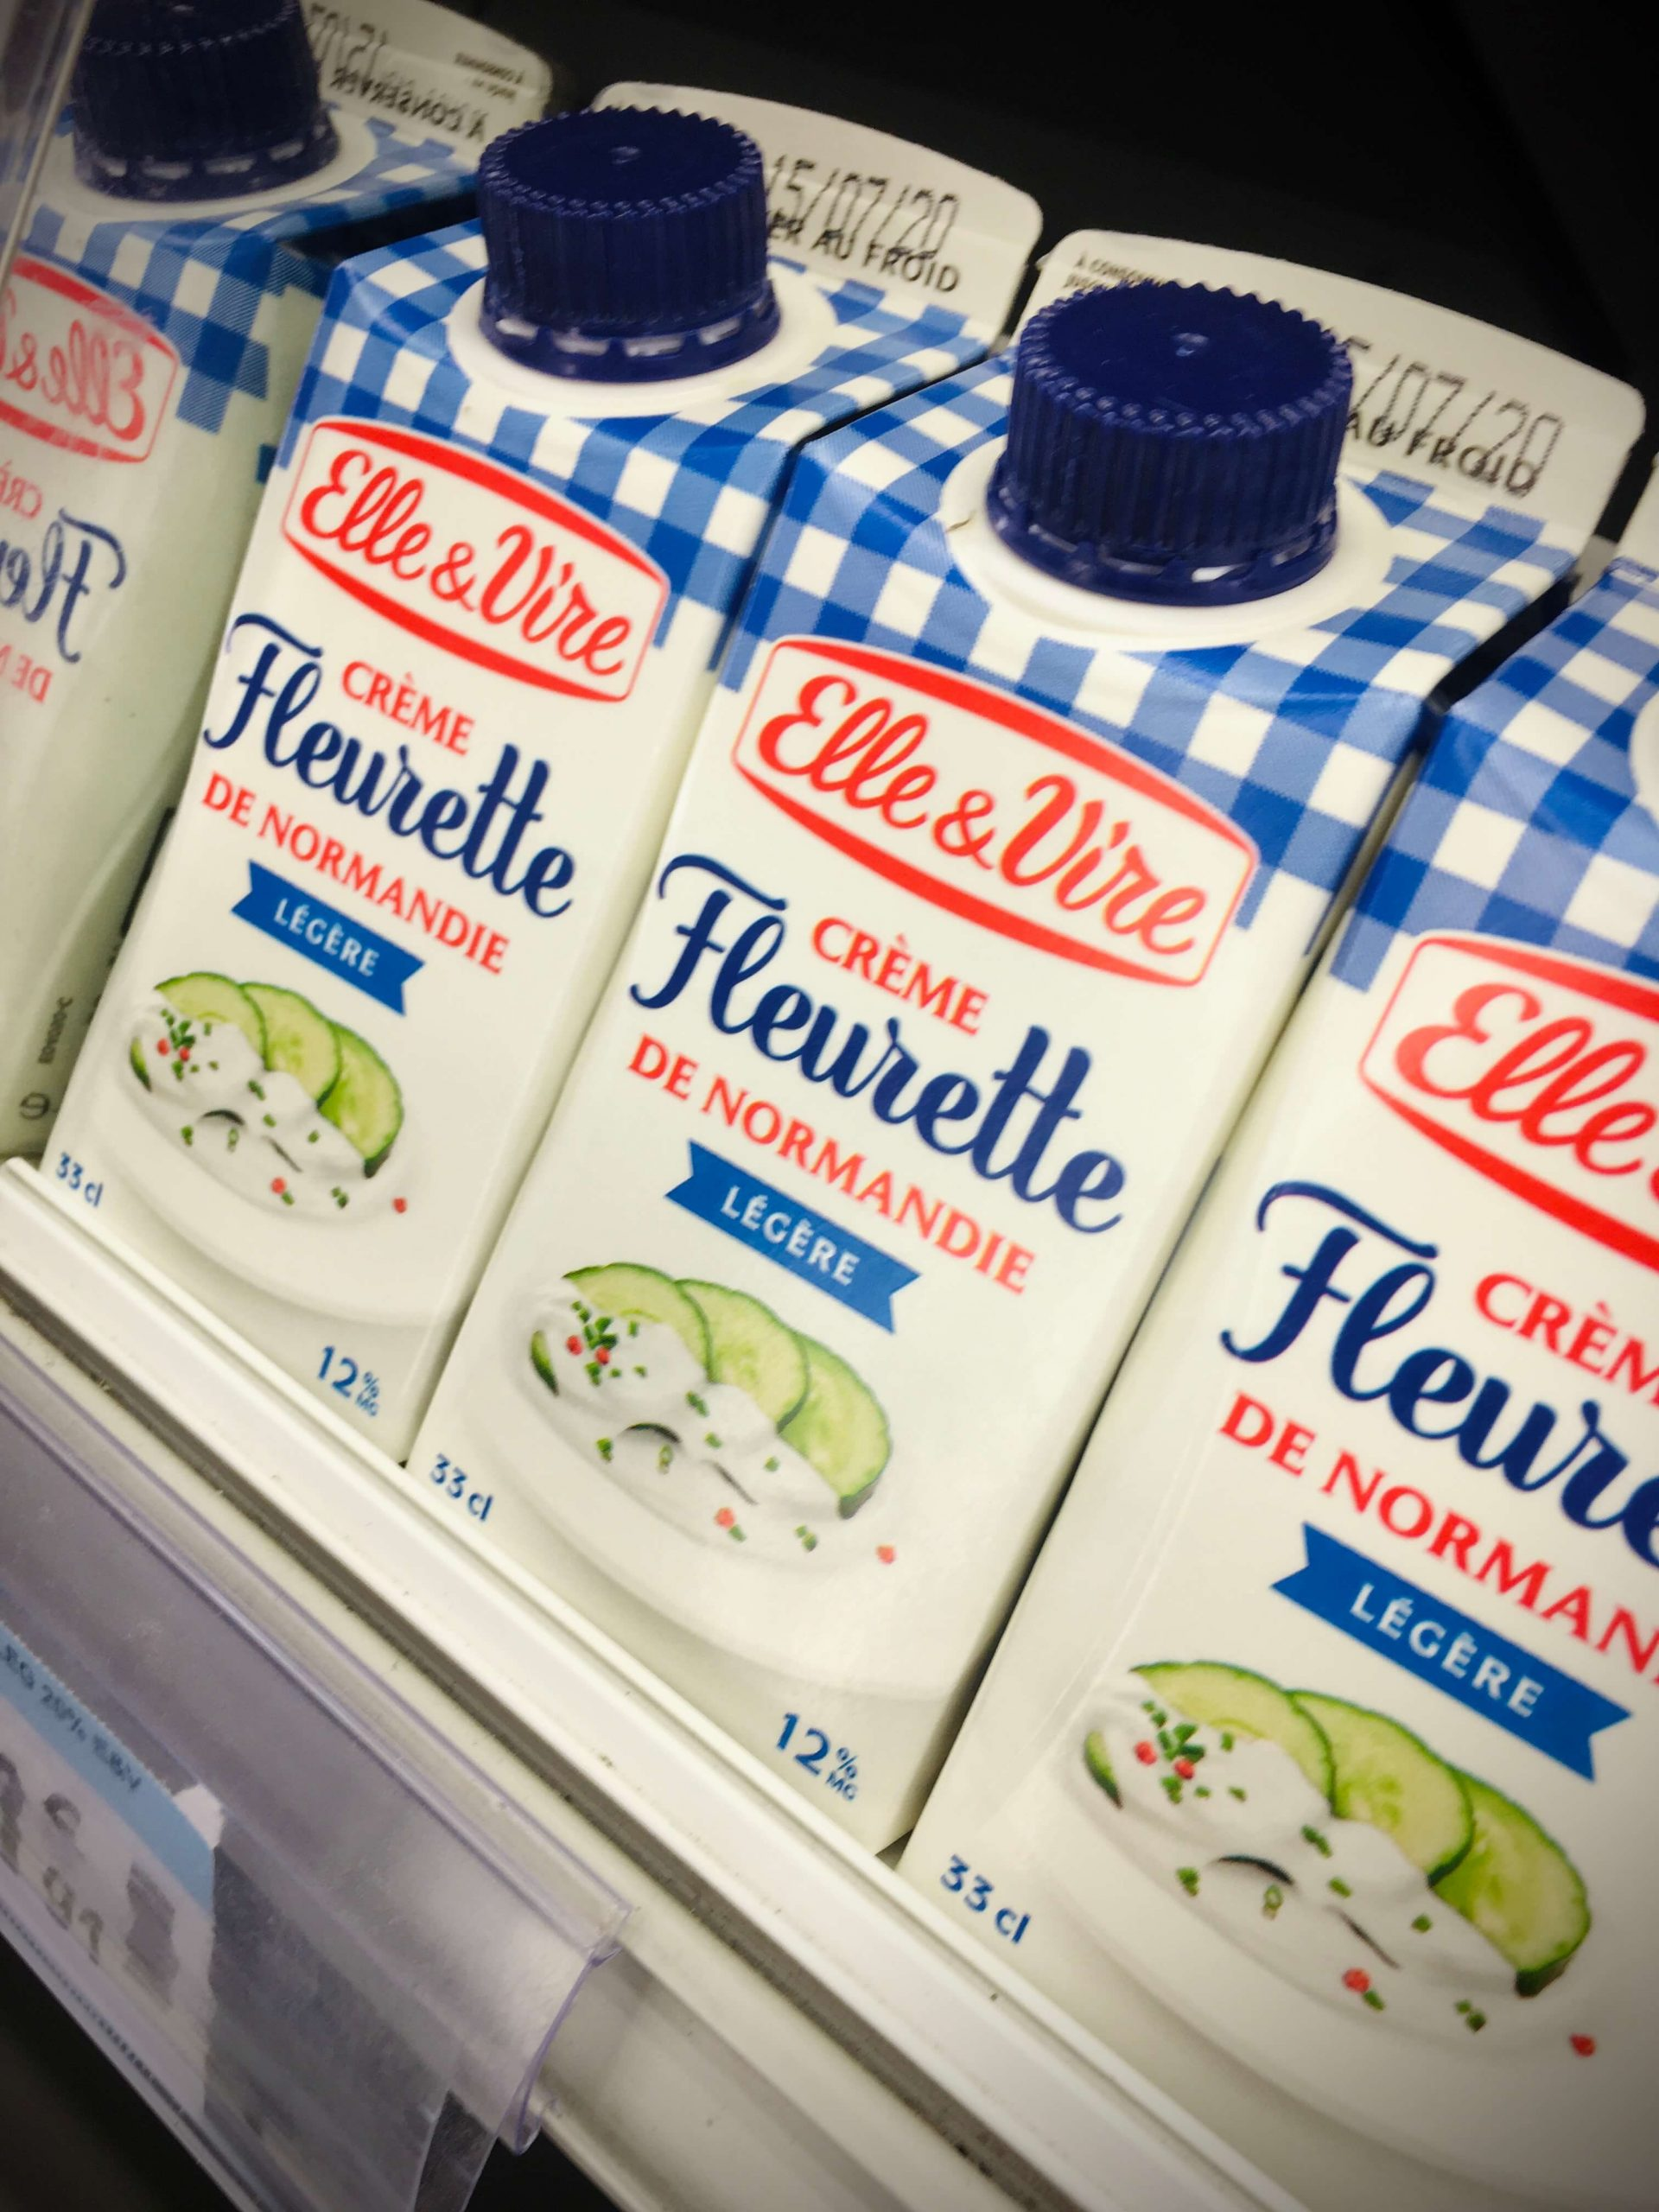 Small cartons of French heavy cream